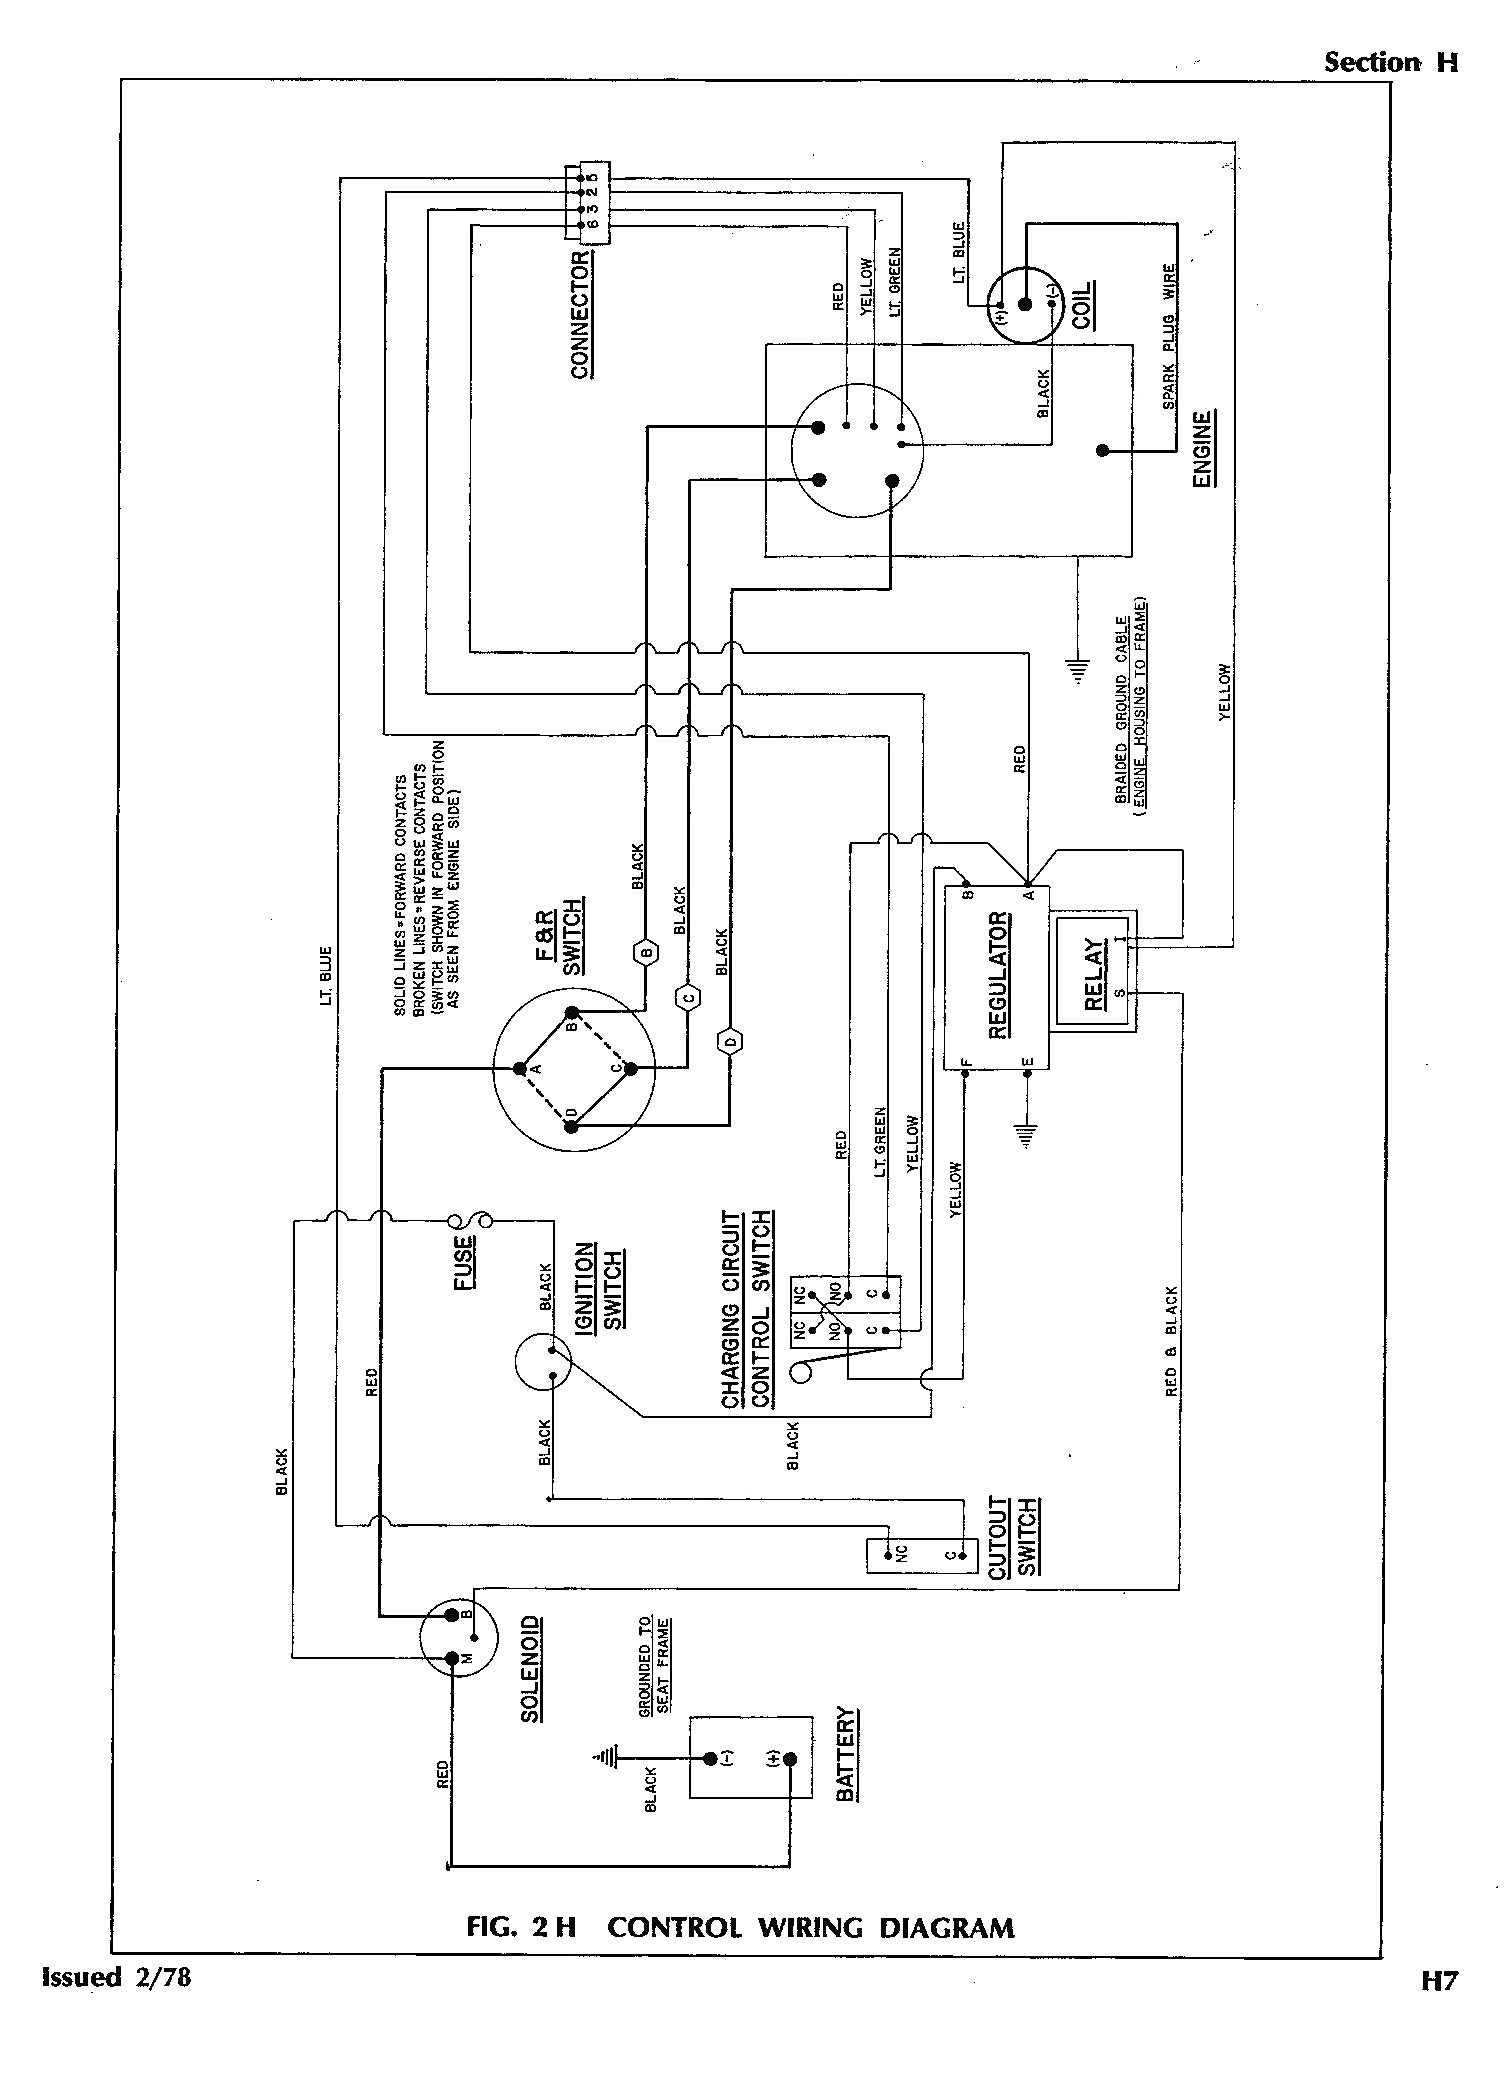 [SCHEMATICS_4US]  DIAGRAM] Ezgo Gas Golf Cart Wiring Diagram FULL Version HD Quality Wiring  Diagram - VENNDIAGRAMONLINE.NUITDEBOUTAIX.FR | 1992 Ezgo Gas Wiring Diagram |  | venndiagramonline.nuitdeboutaix.fr